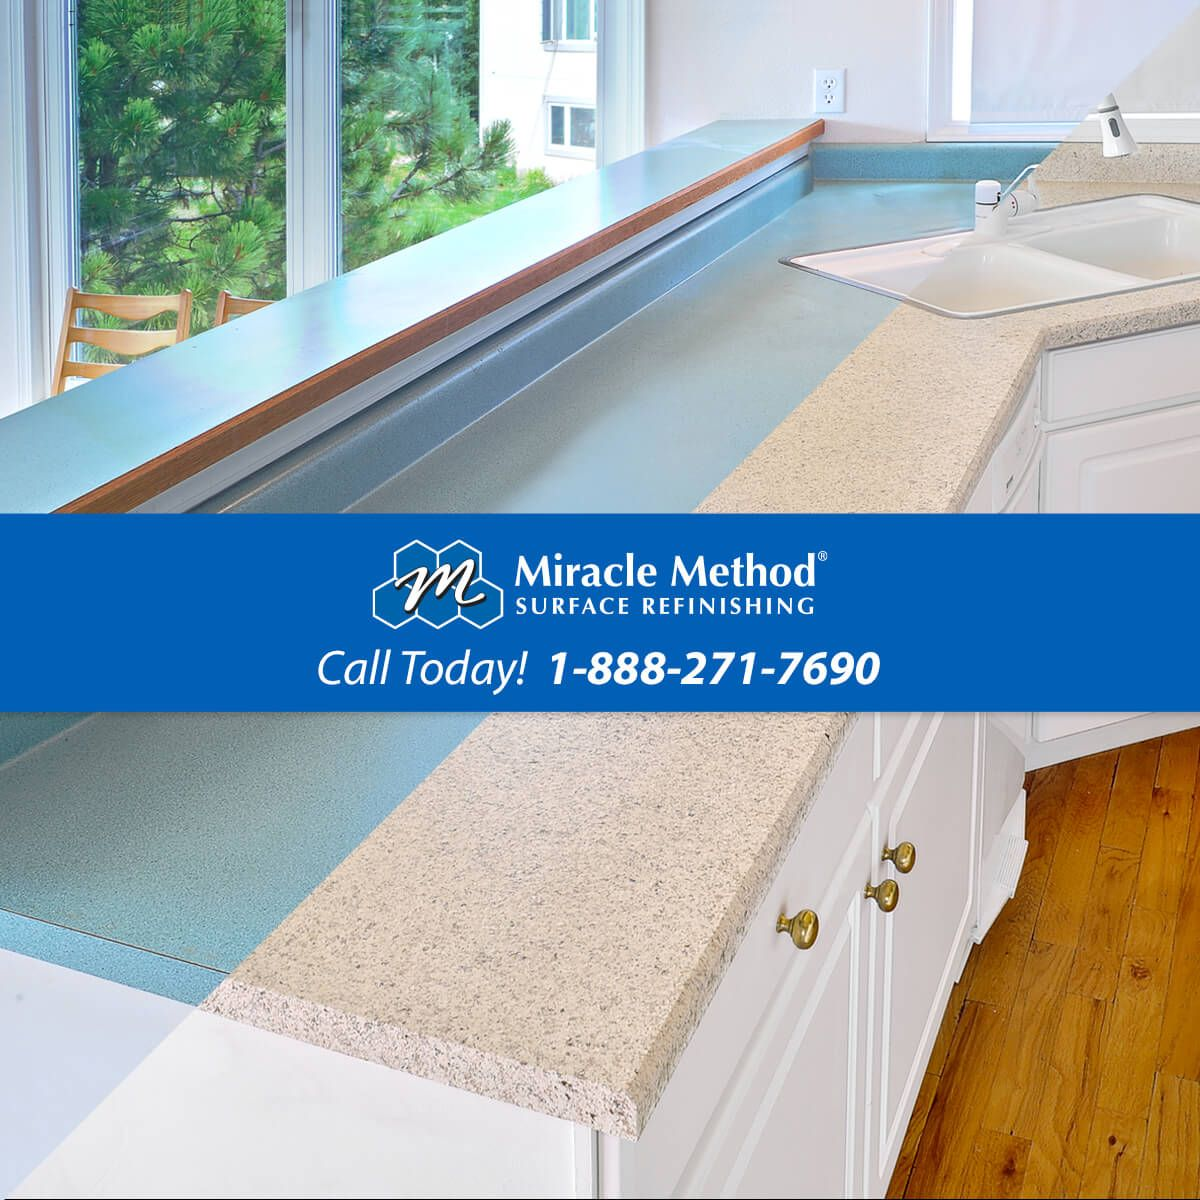 Fiberglass Bathtub Refinishing – Porcelain Tub Refinishing – Miracle ...